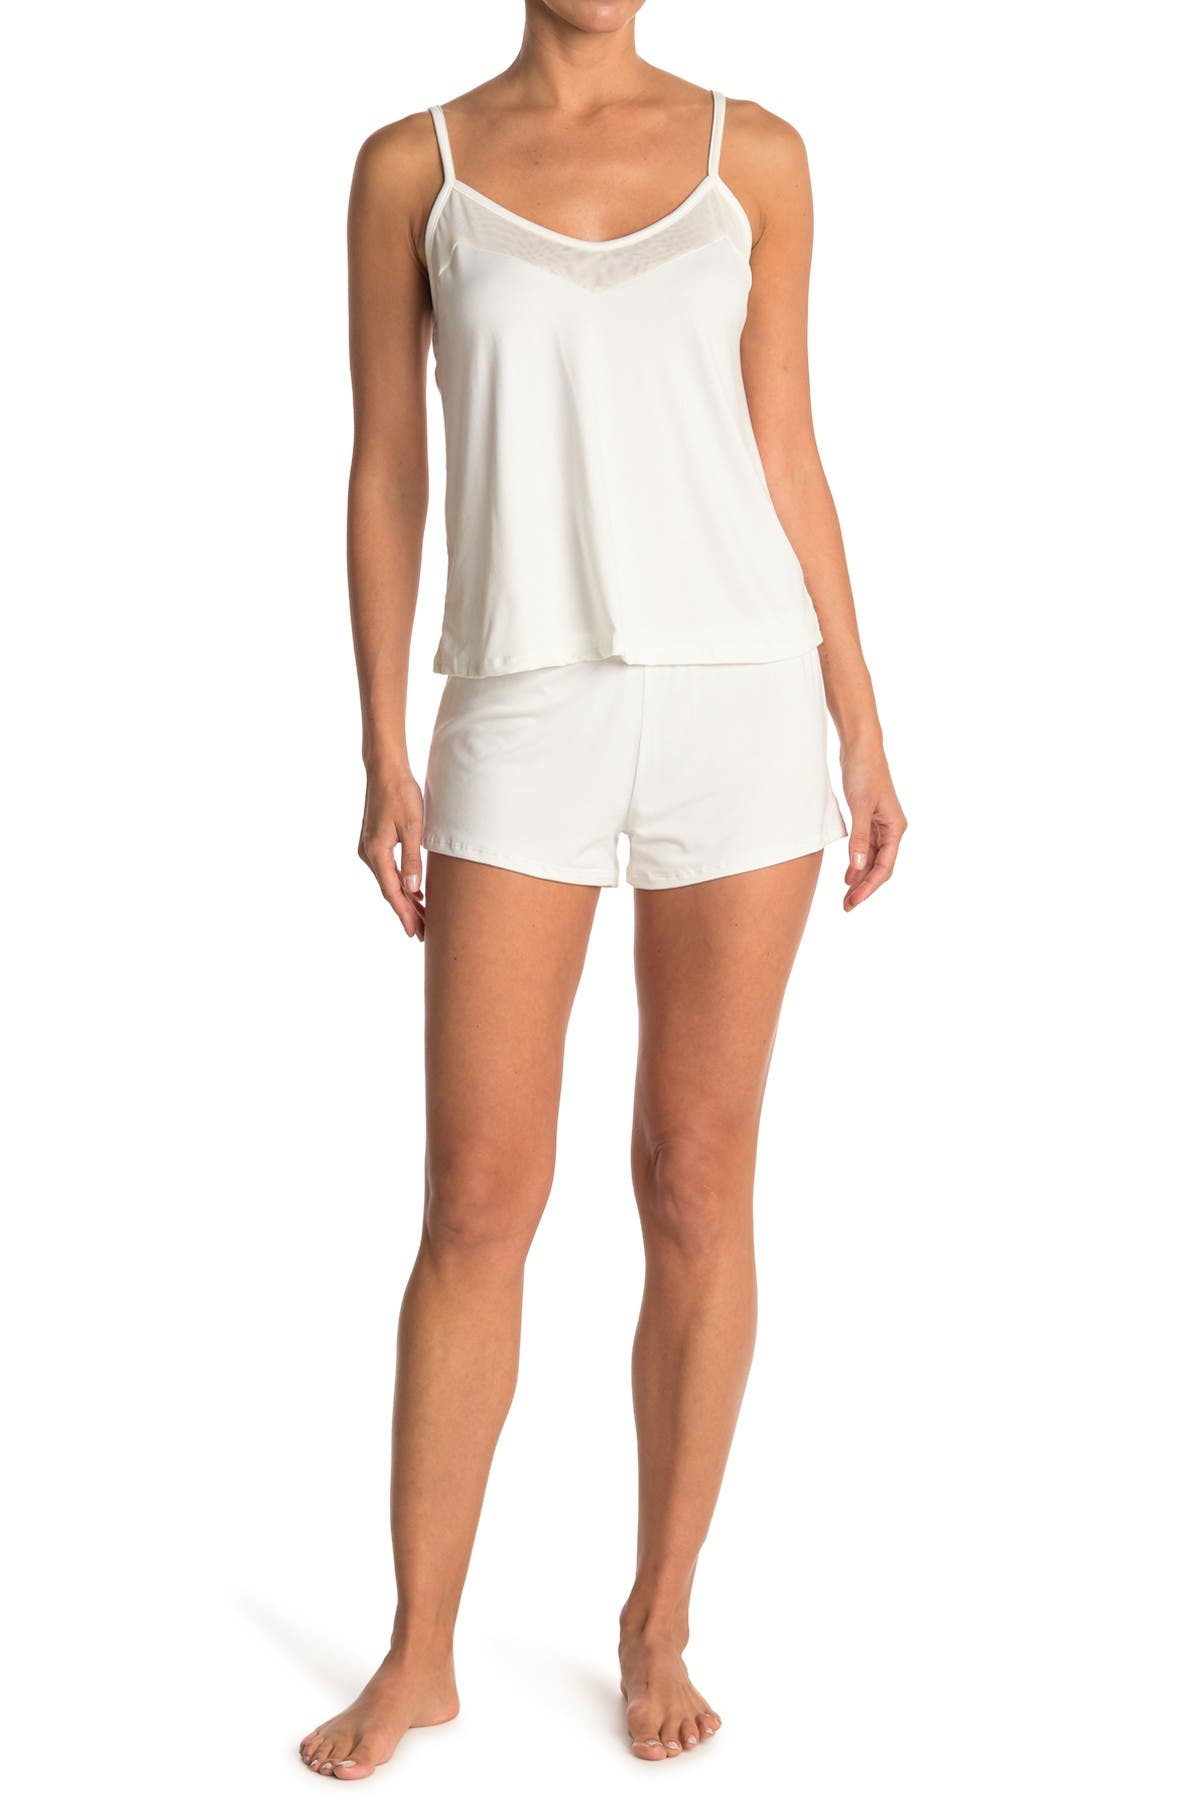 Image of COZY ROZY Mesh Camisole + Shorts 2-Piece Pajama Set